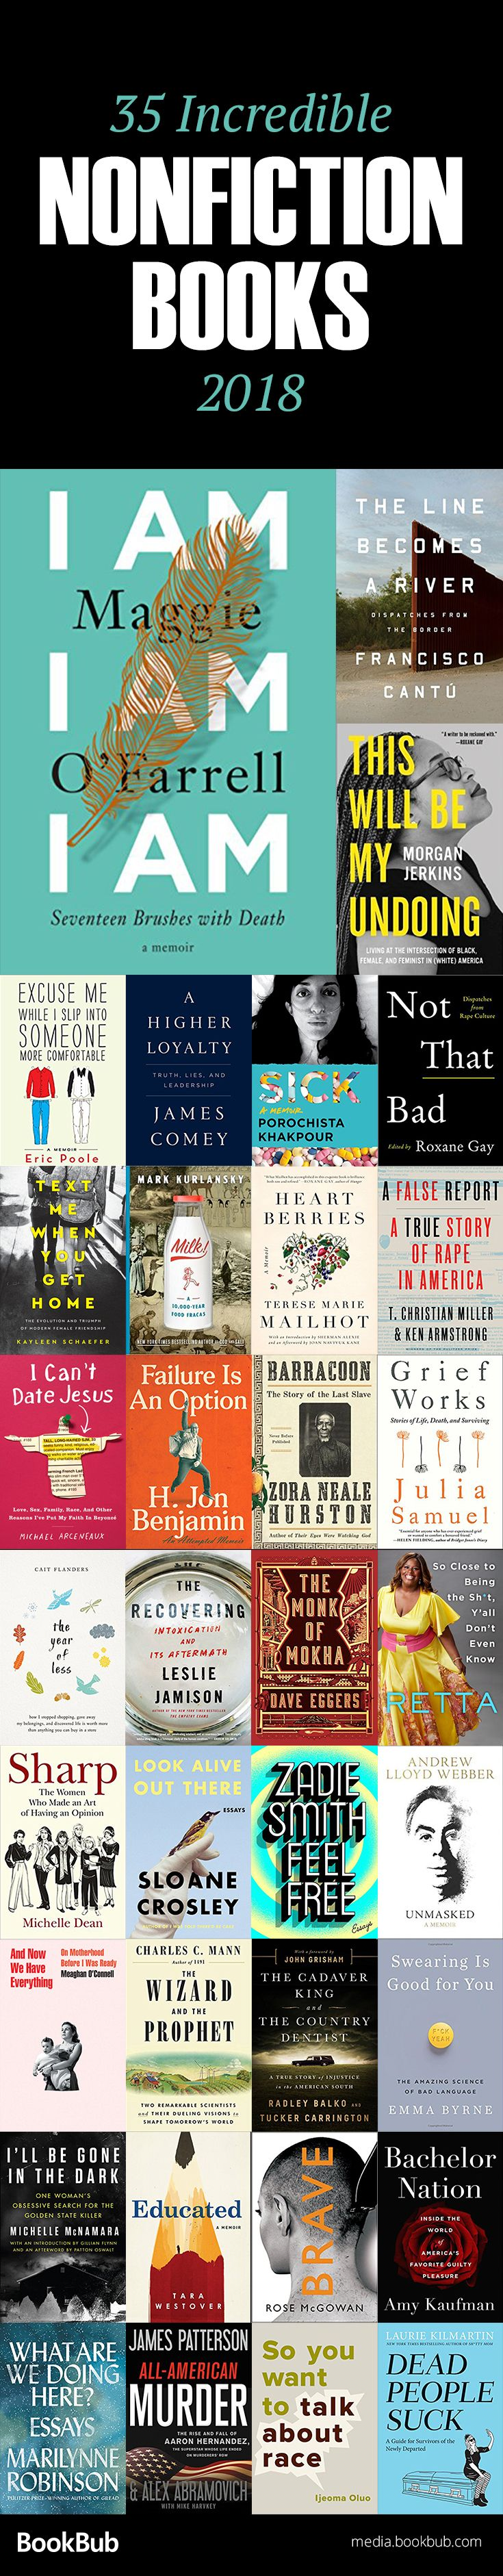 35 HighlyAnticipated Nonfiction Books Coming in 2018 is part of Nonfiction books, Books for teens, Books 2018, Book club books, Inspirational books, Nonfiction - These new books feature subjects spanning from coping with grief to the virtues of swearing to living with chronic illness